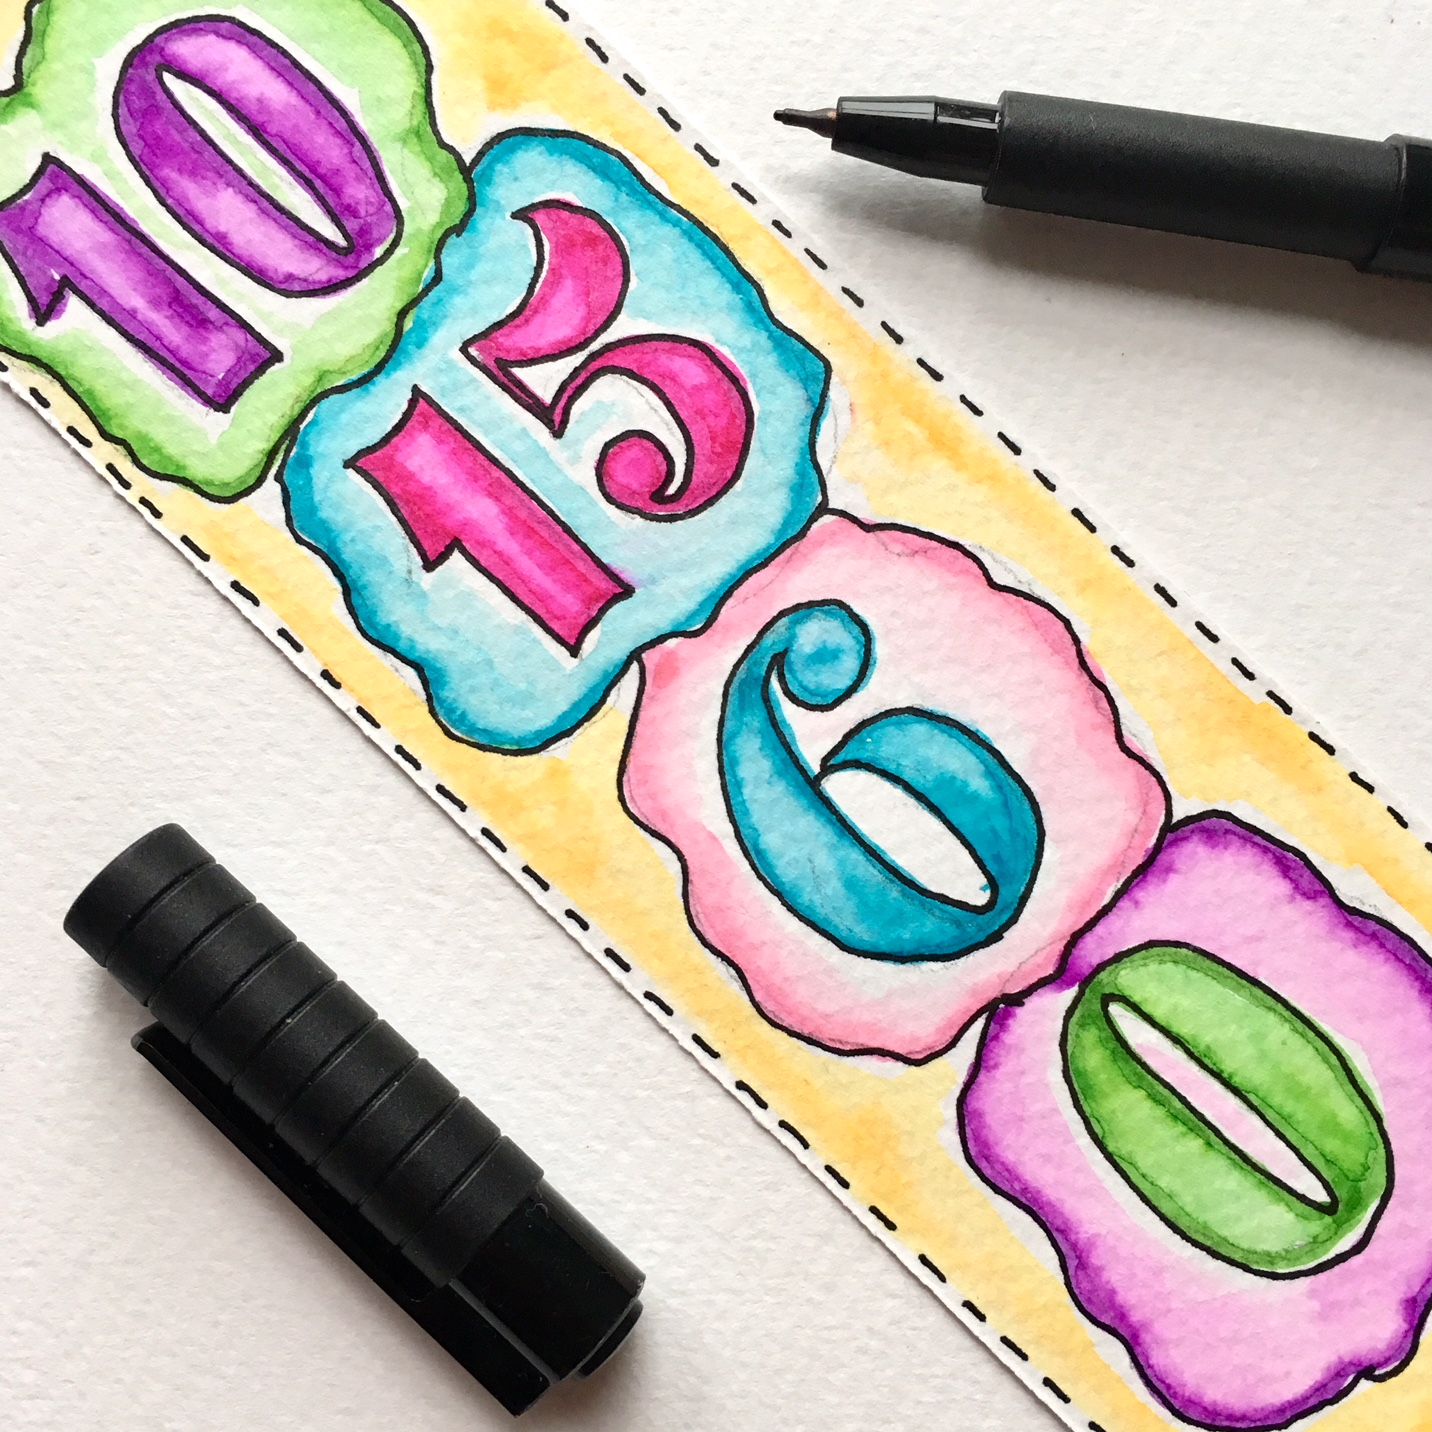 answers of the sums on the reverse side of the handmade bookmark